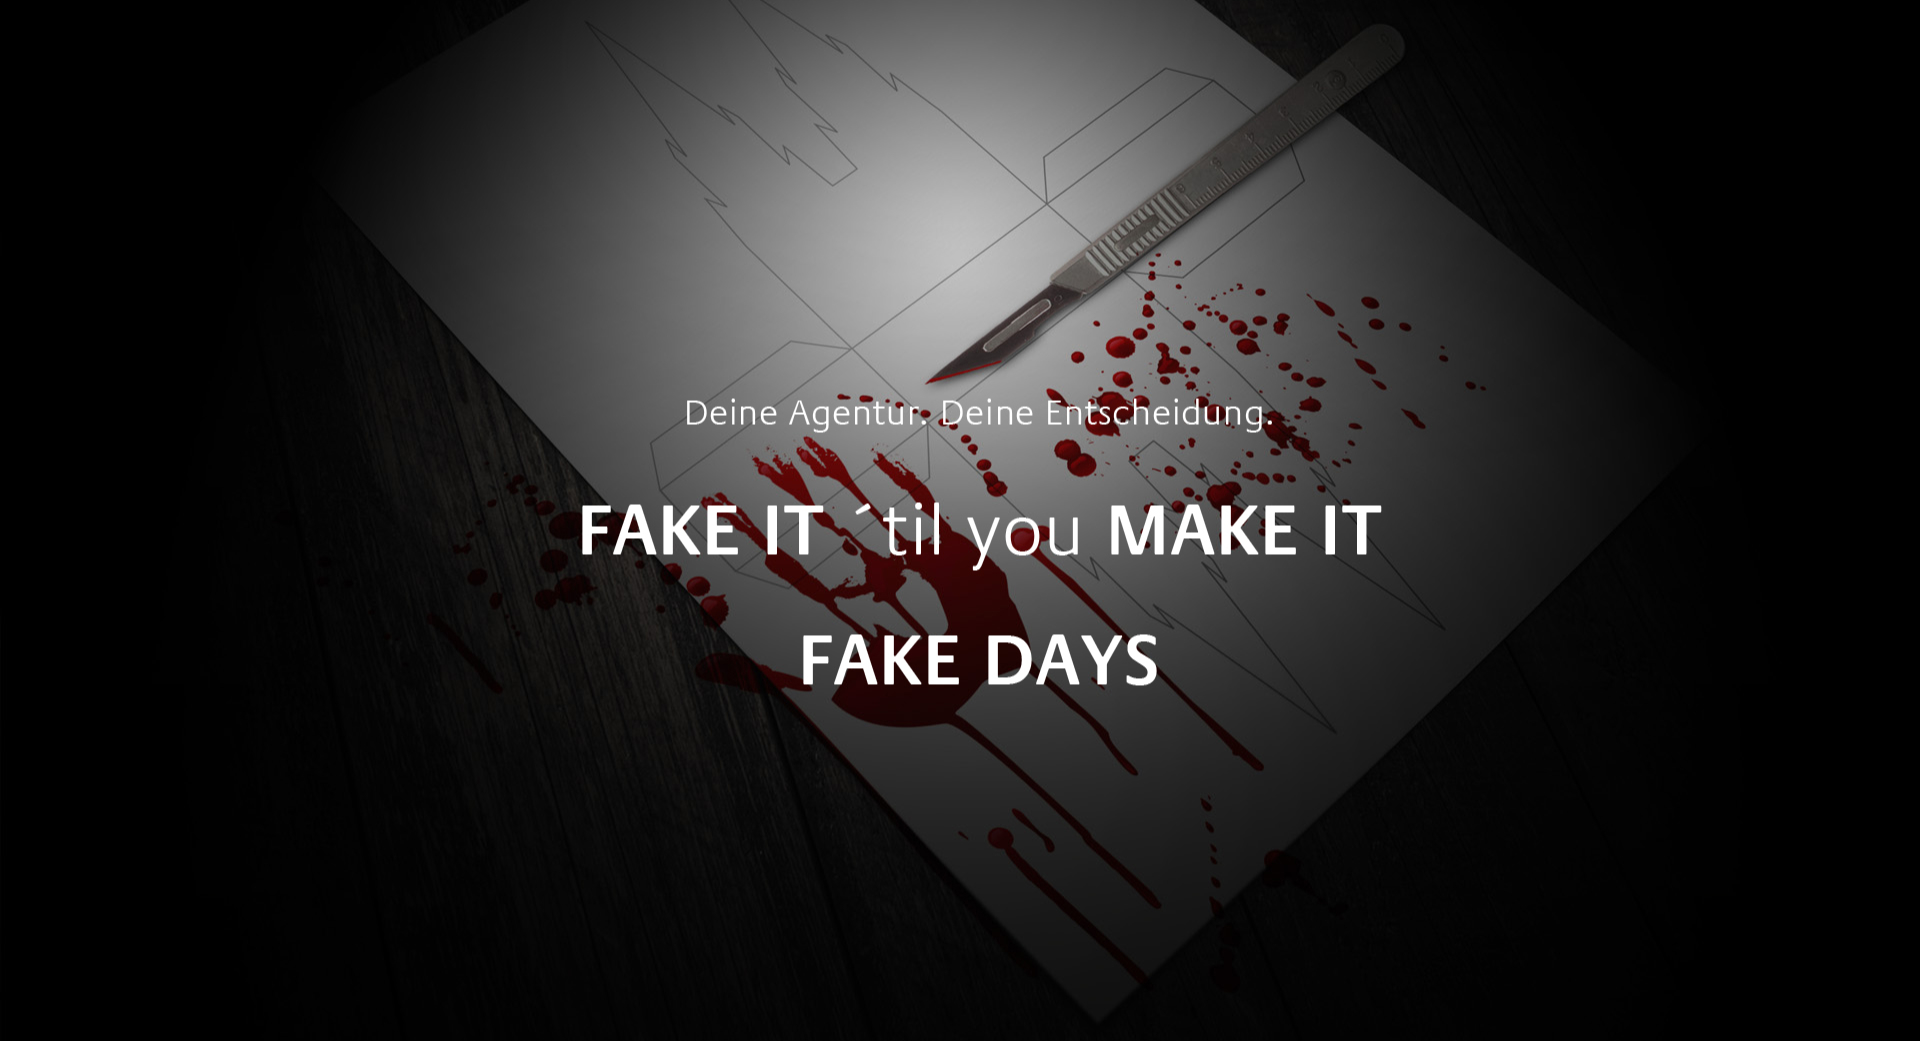 FAKE DAYS – FAKE IT ´til you MAKE IT